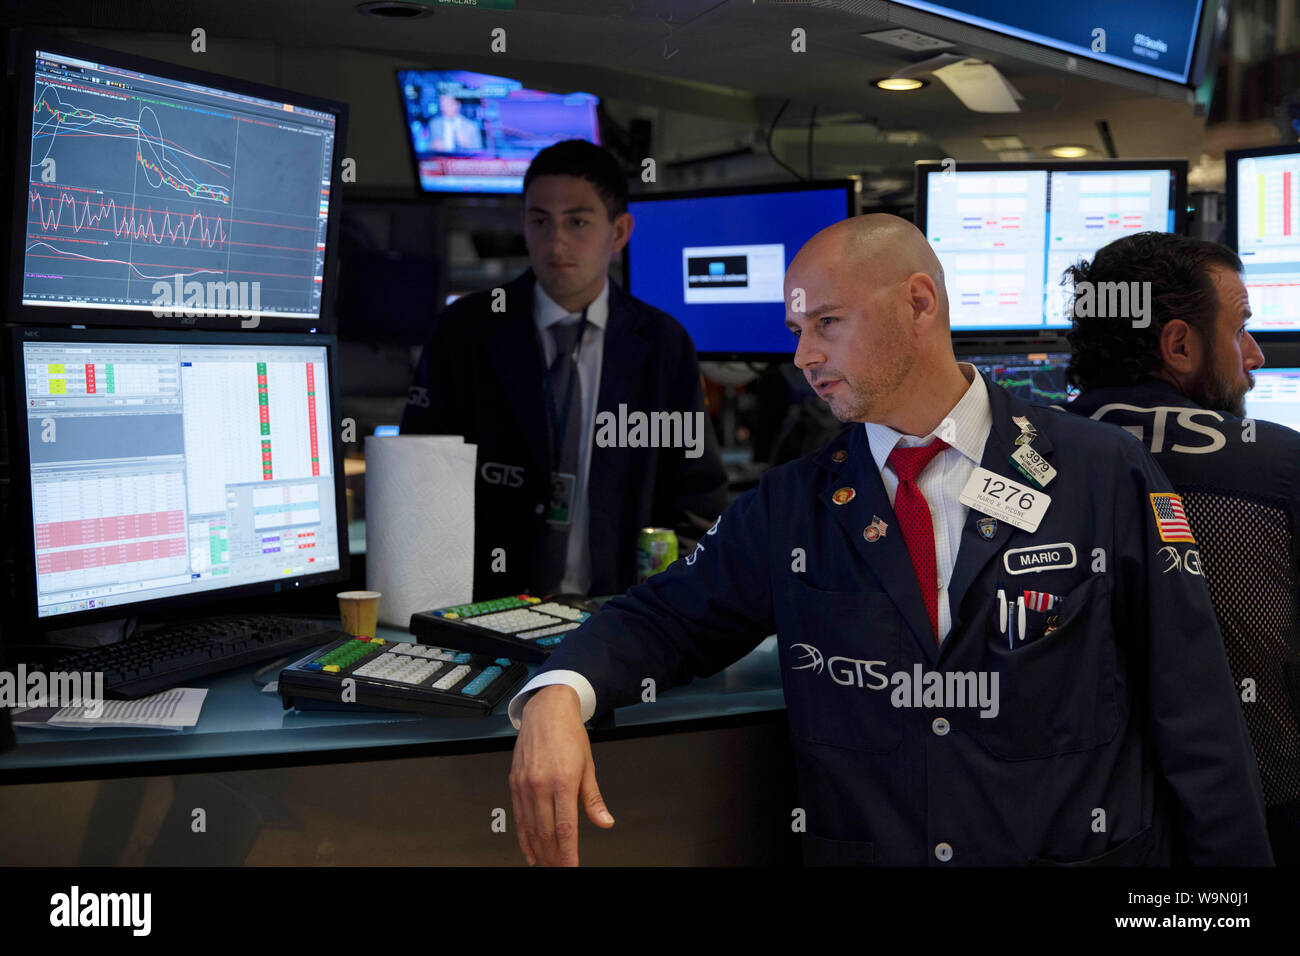 New York, USA. 14th Aug, 2019. Traders work at the New York Stock Exchange in New York, the United States, on Aug. 14, 2019. U.S. stocks closed remarkably lower on Wednesday, as persisting fears over an imminent recession struck a blow to the already-dampened investor sentiment. The Dow plunged 800.49 points, or 3.05 percent to 25,479.42, marking the largest daily decline of the year so far. The S&P 500 decreased 85.72 points, or 2.93 percent, to 2,840.60. Credit: Xinhua/Alamy Live News Credit: Xinhua/Alamy Live News Stock Photo